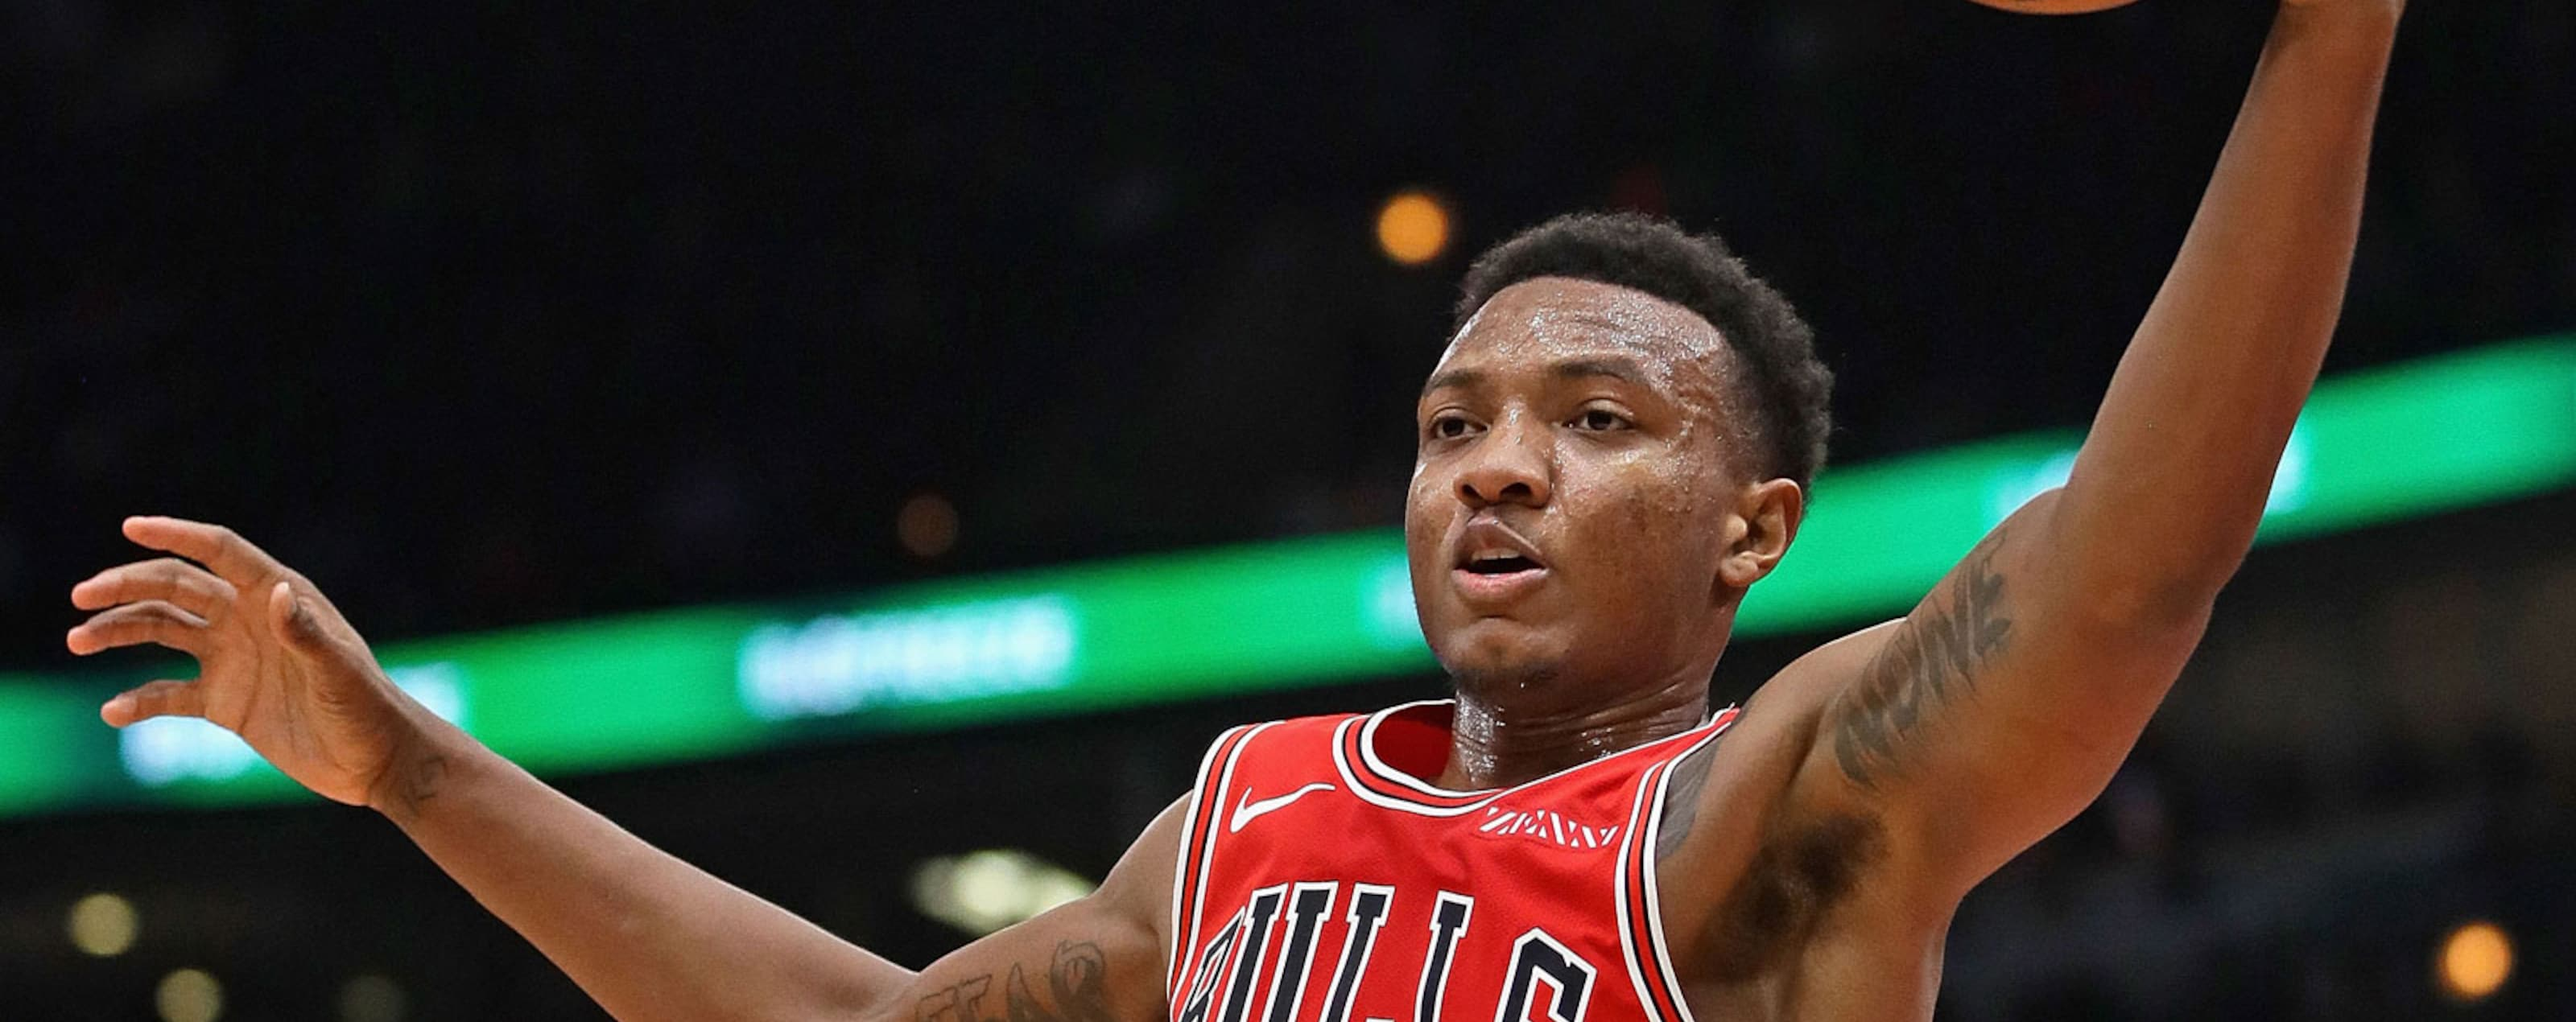 Wendell Carter Jr. #34 of the Chicago Bulls rebounds over Bogdan Bogdanovic #8 of the Sacramento Kings at the United Center on December 10, 2018 in Chicago, Illinois.